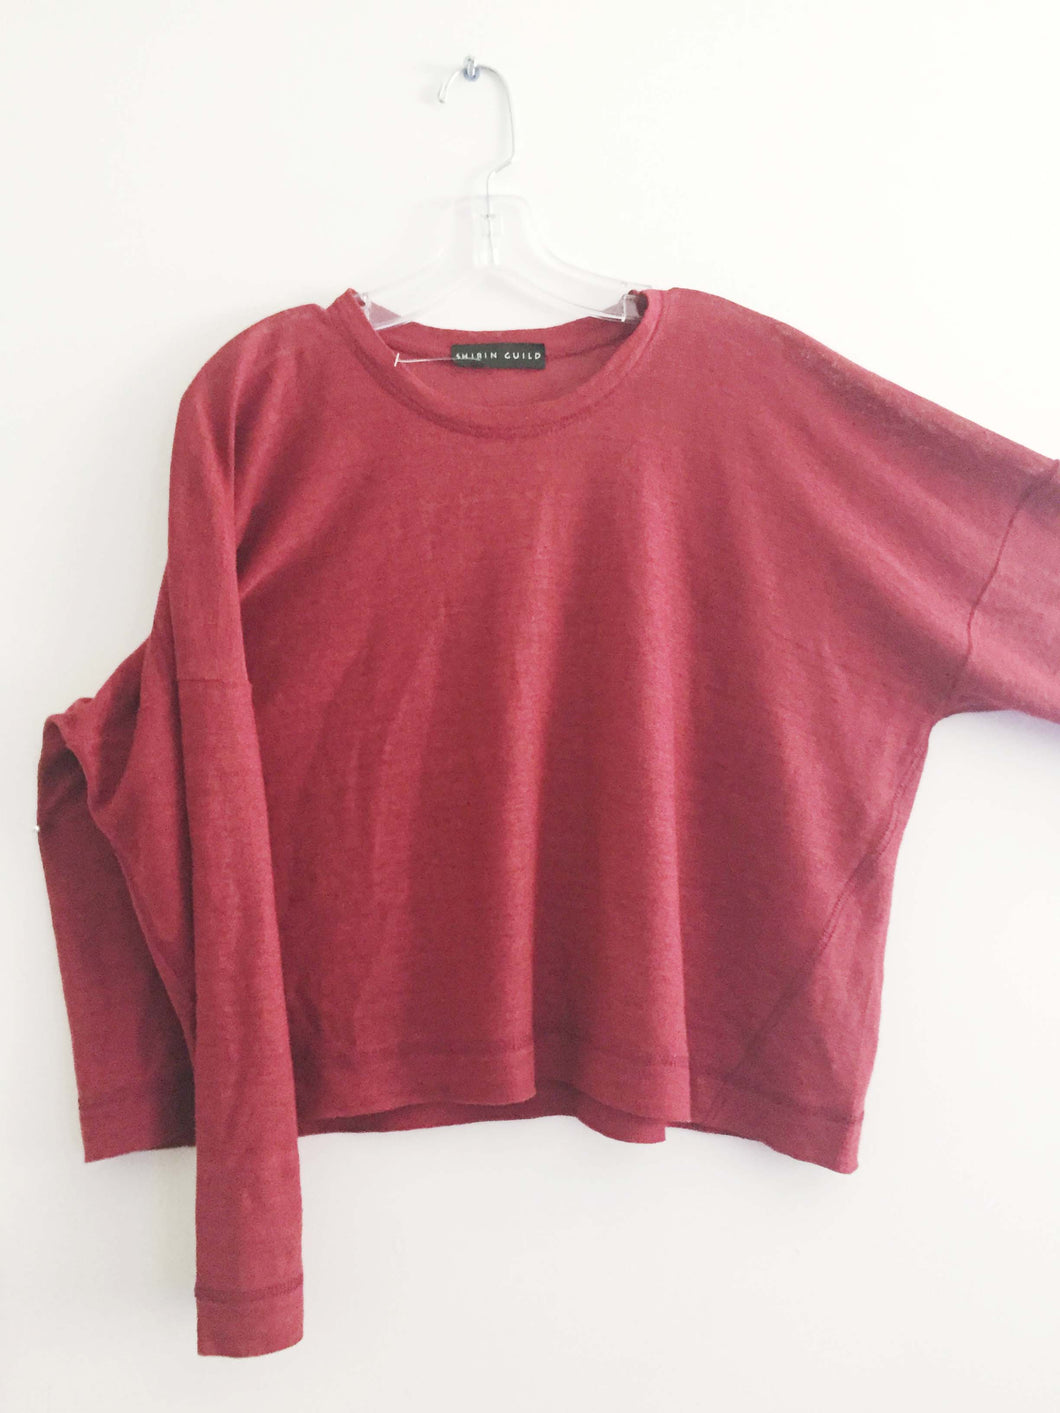 SHIRIN GUILD sweater lagenlook artsy ruby red linen upscale One Size